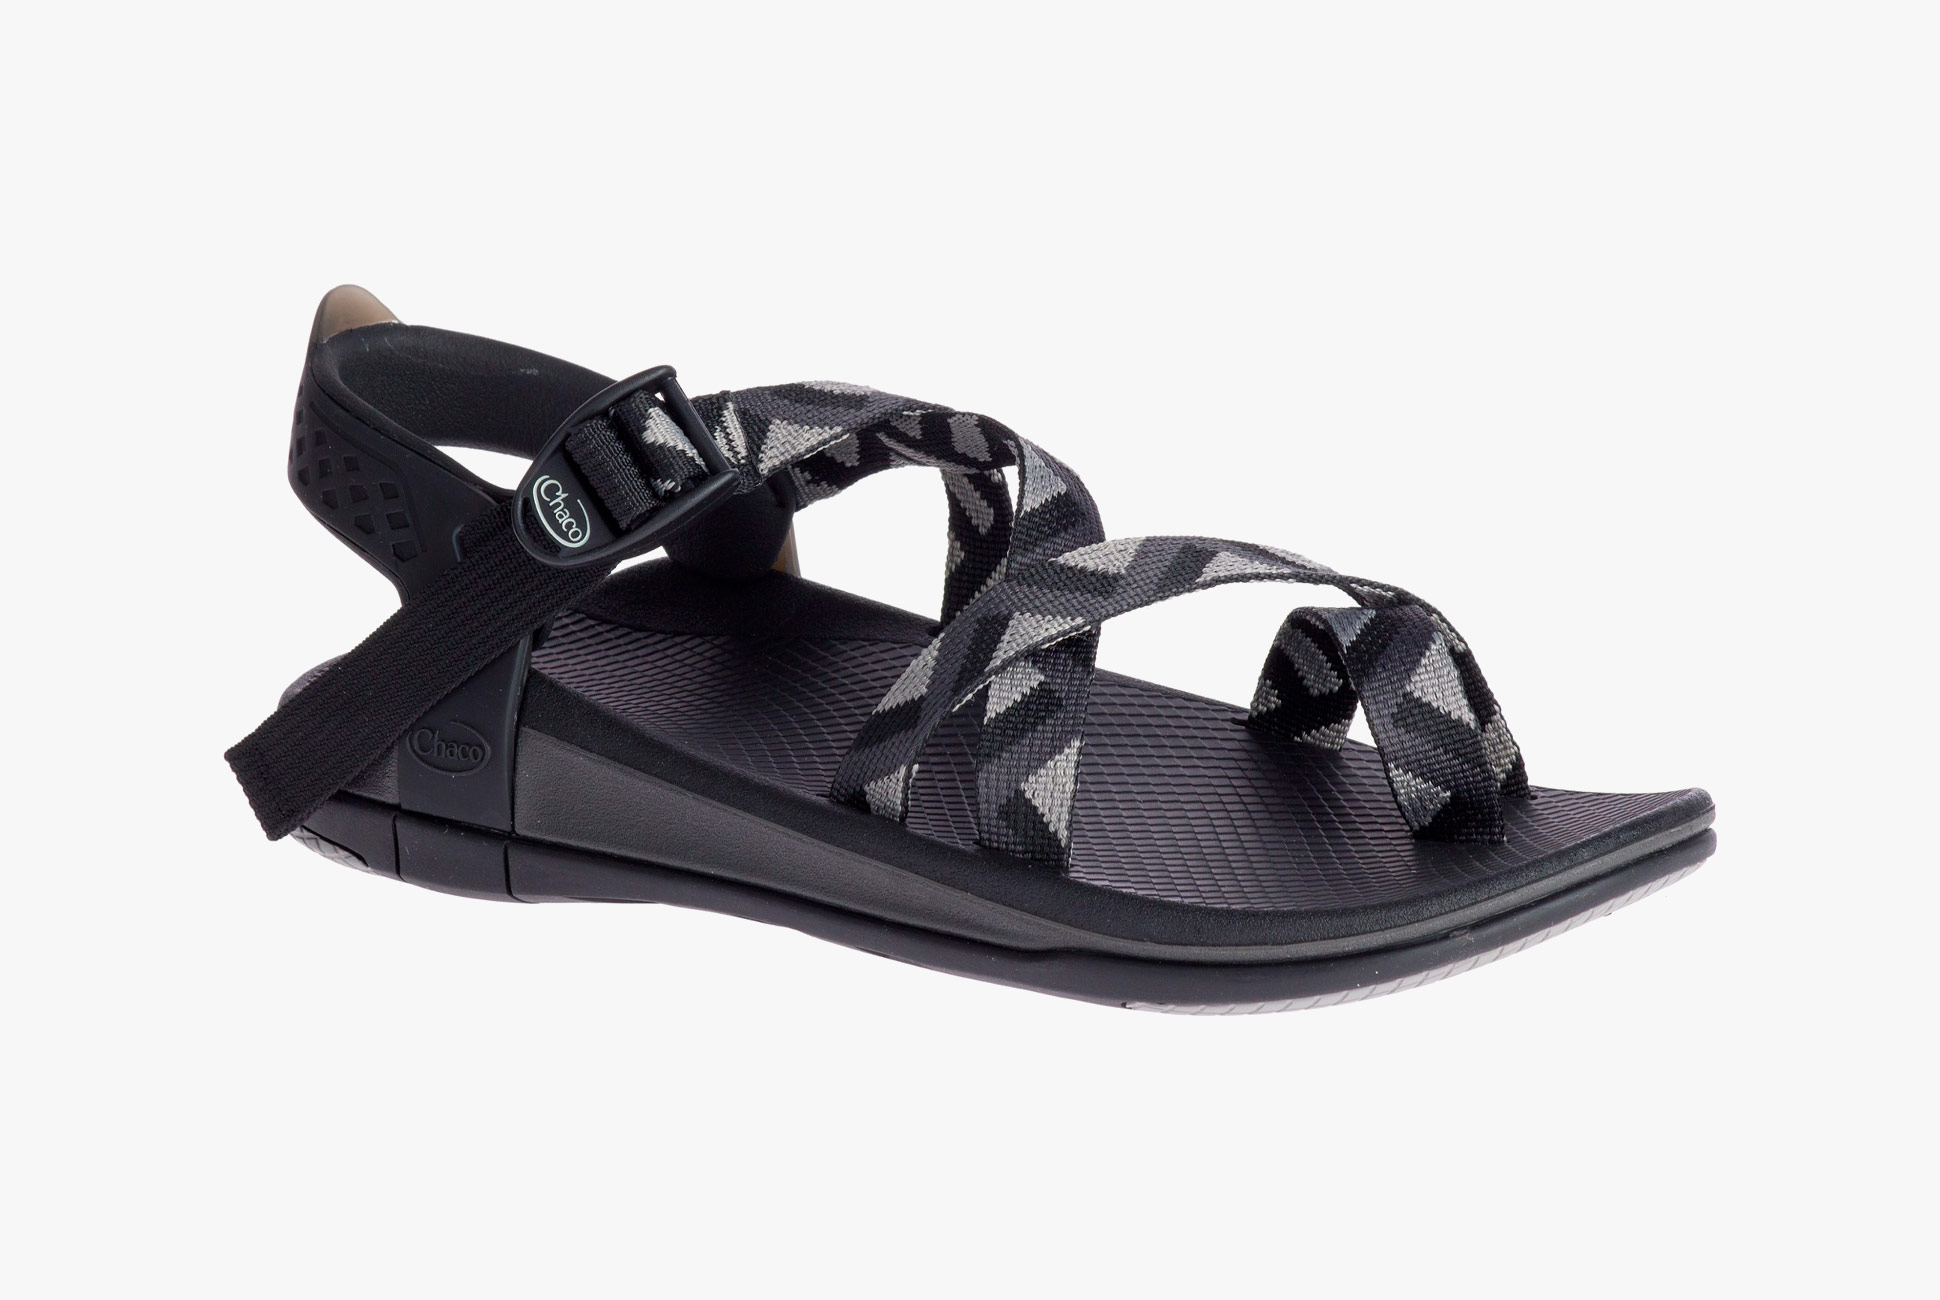 7acebd011b67c8 Chaco Z2 Sandal Sale Save 50%  Right now